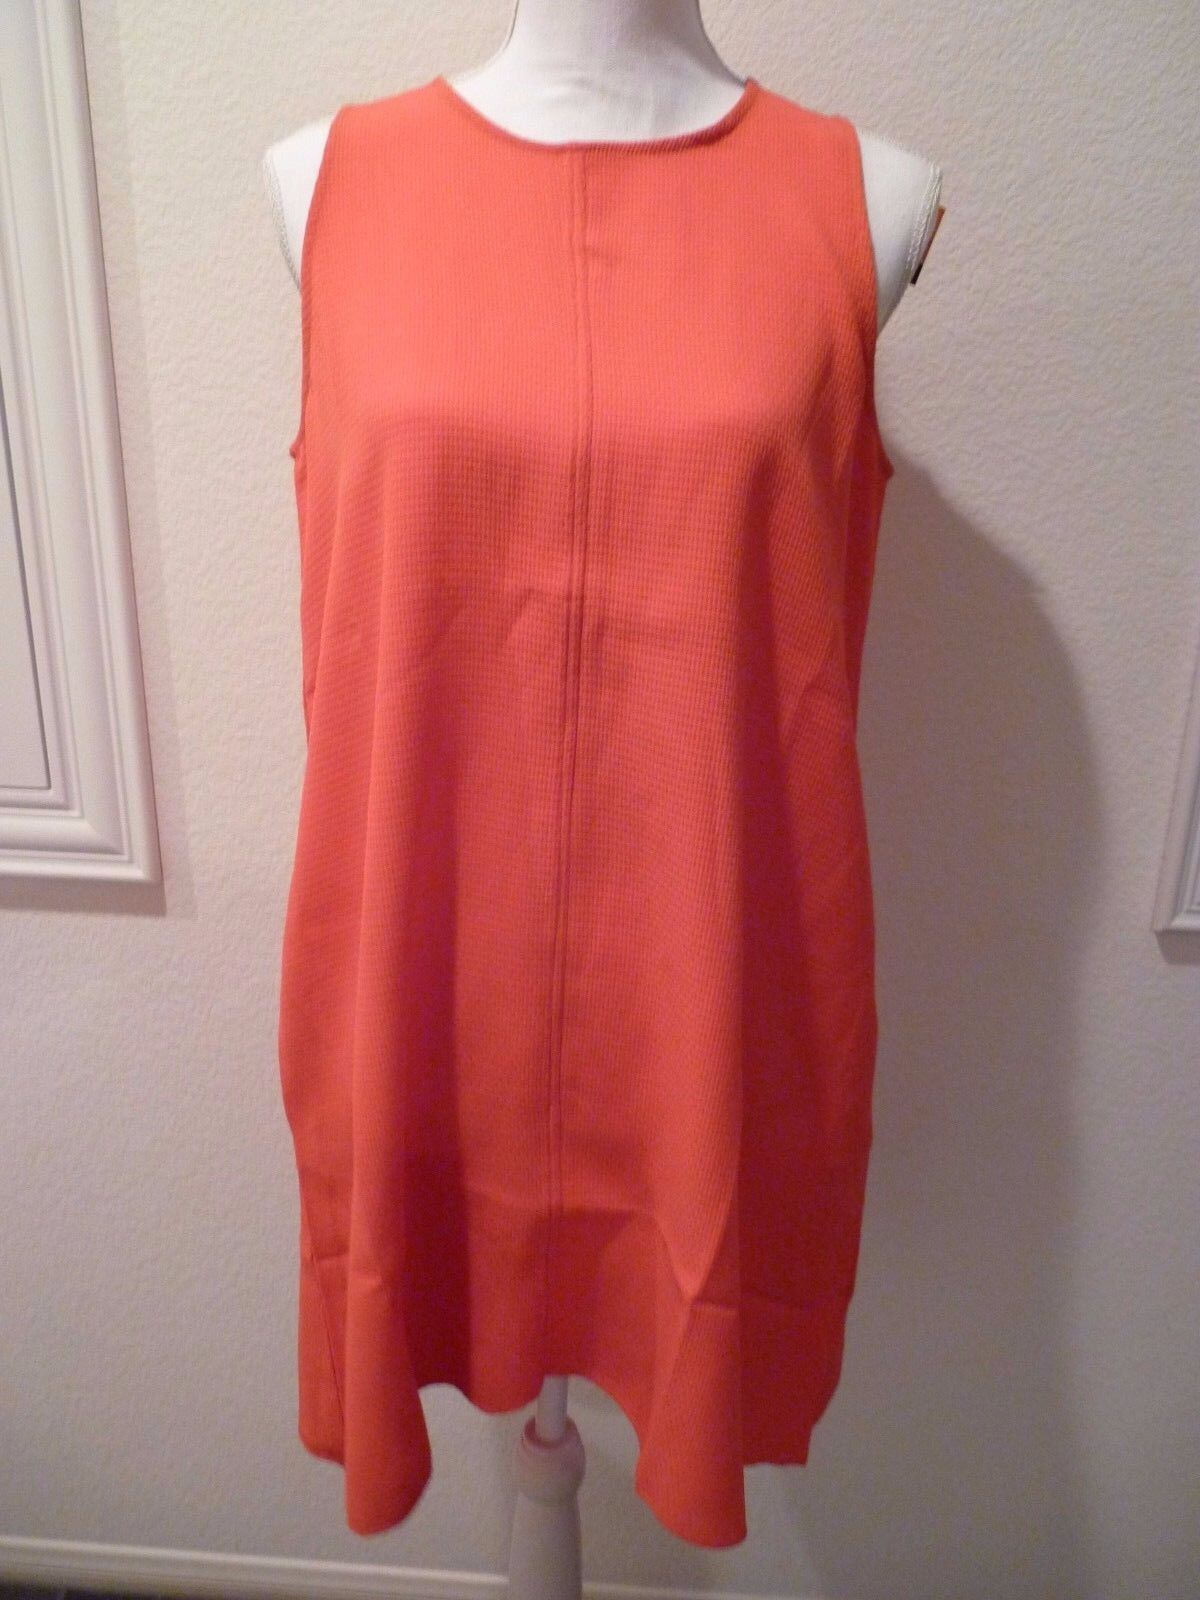 ISLE by Melis Kozan A line coral sleeveless Dress  SZ- M NWT